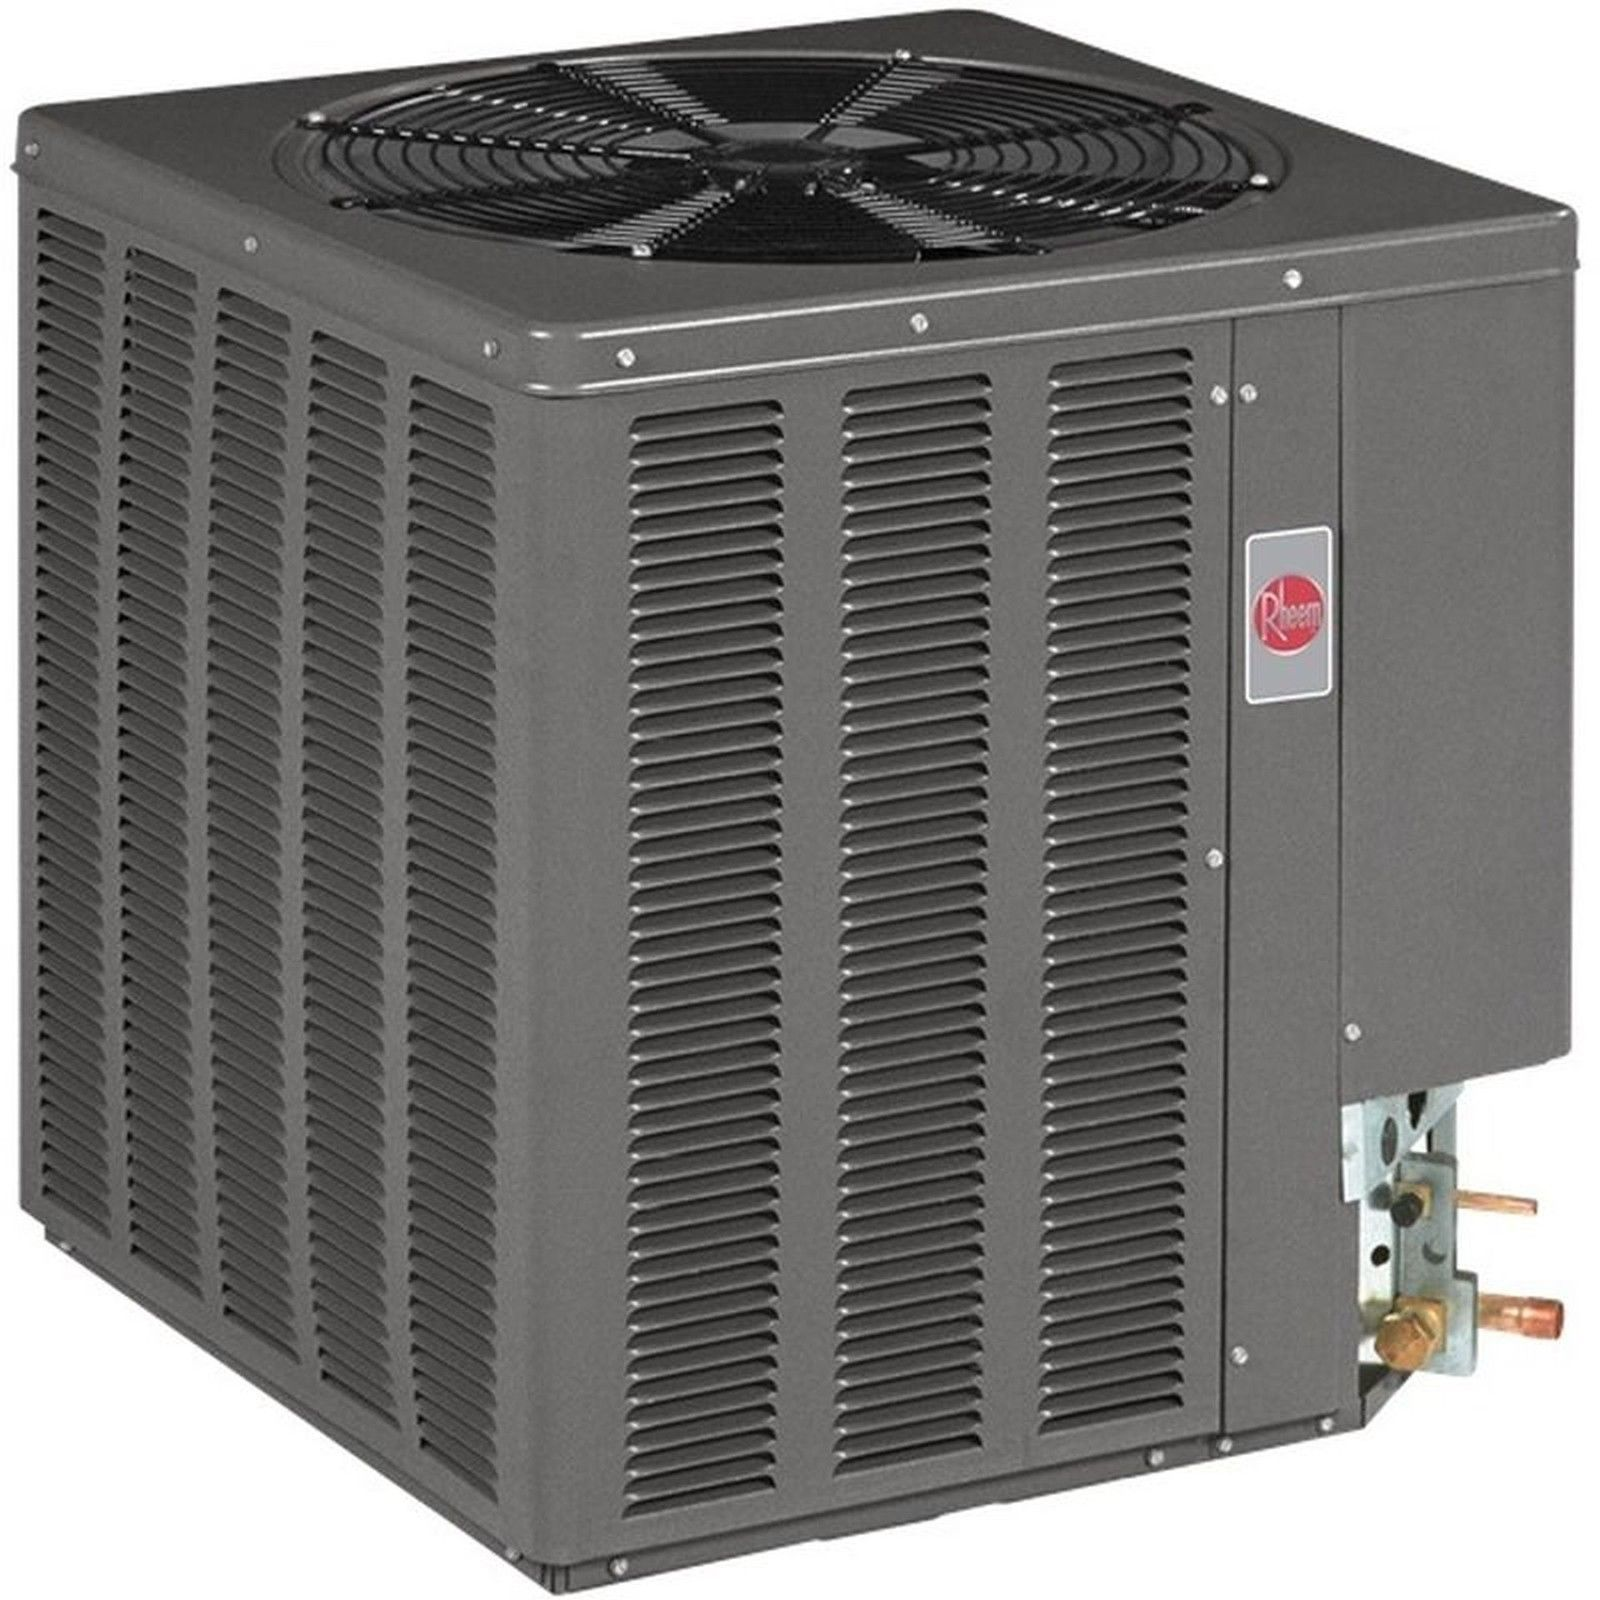 TON CENTRAL AIR CONDITIONING UNIT HEAT PUMP SYSTEM RHEEM 13JPL Air  #9C2F3A